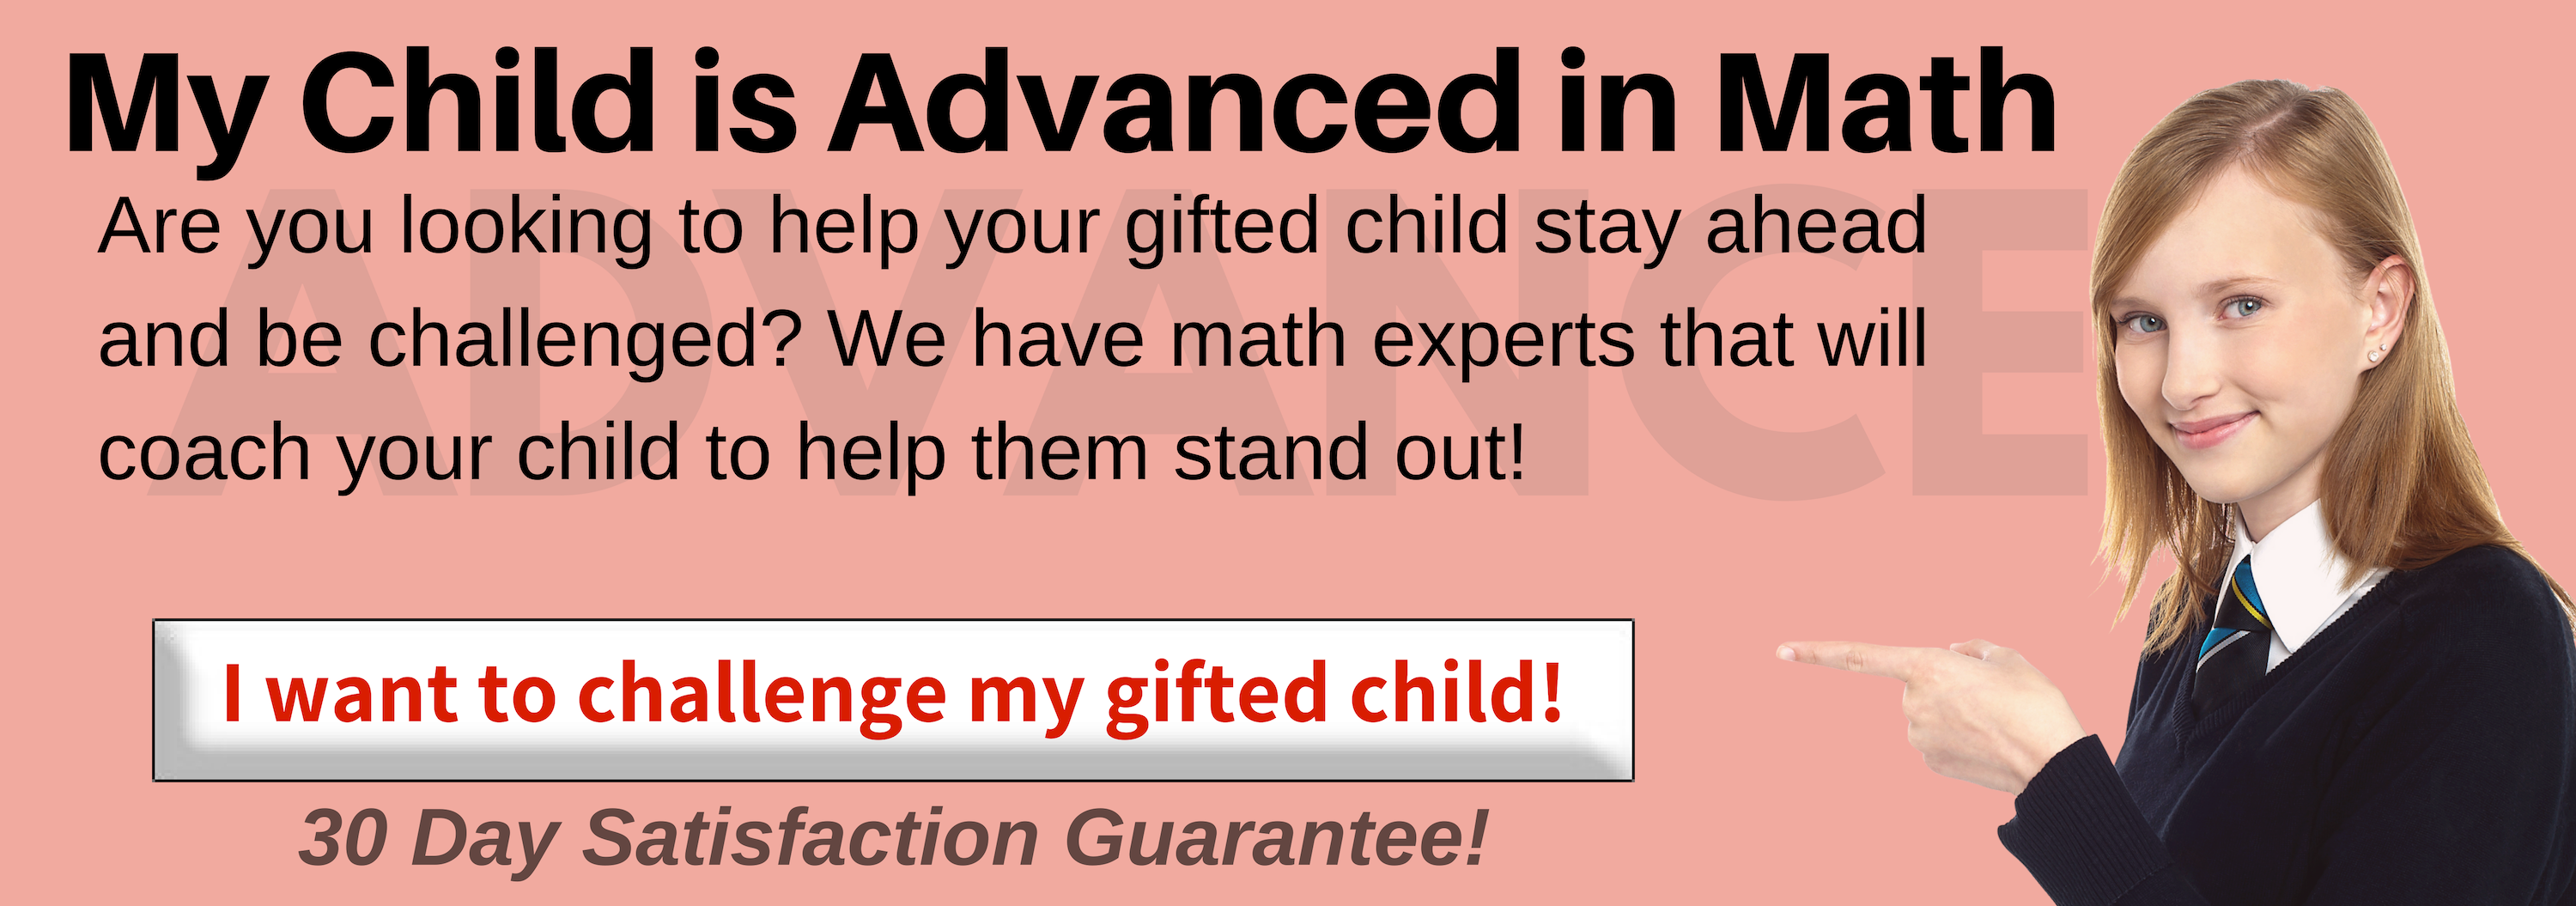 Is your child gifted and talented in math? Need an enrichment program to help your child stay ahead in math? We can push them to excellence in math